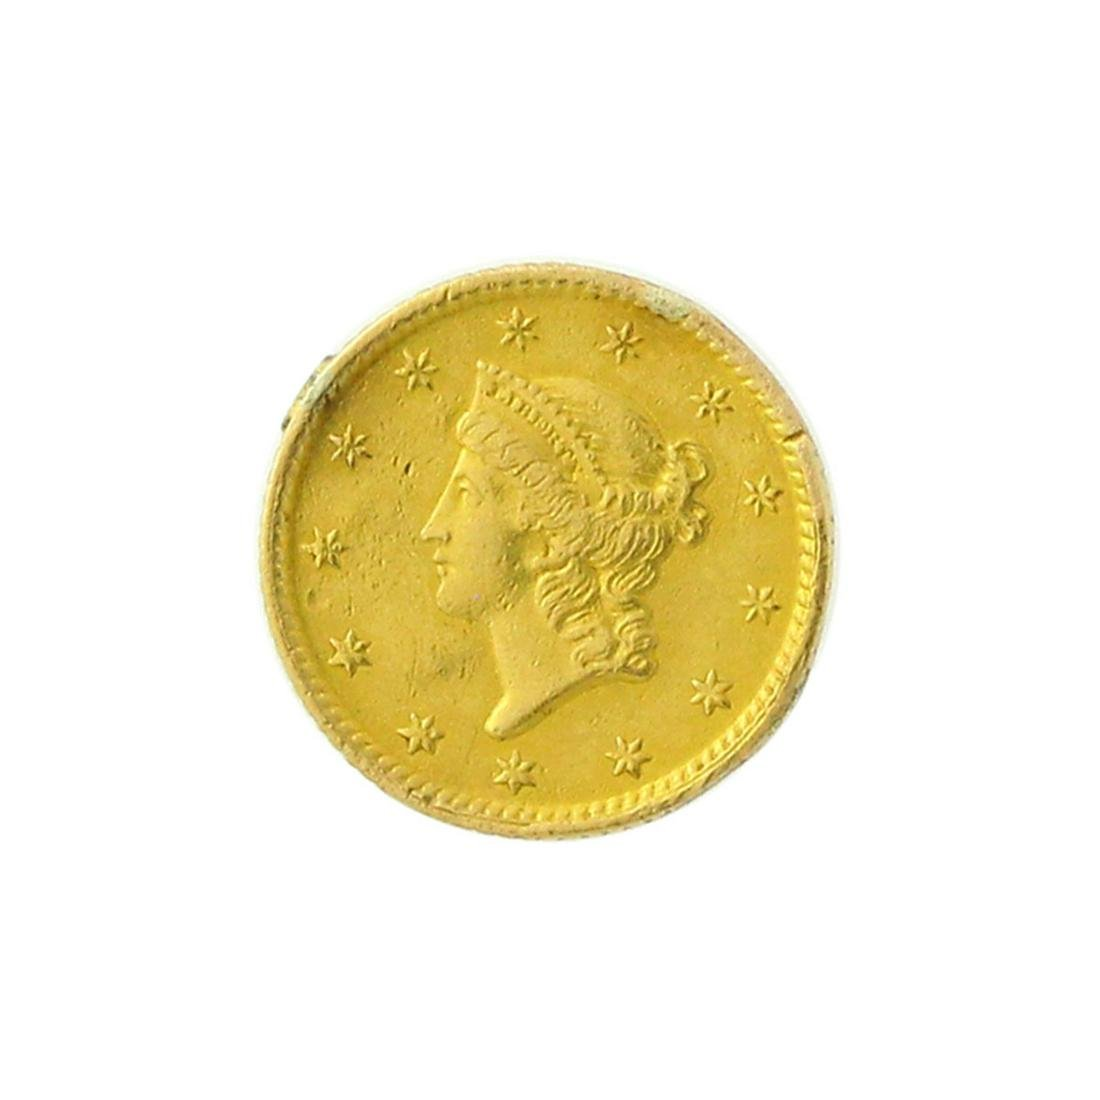 Extremely Rare 1851 $1 U.S. Liberty Head Gold Coin